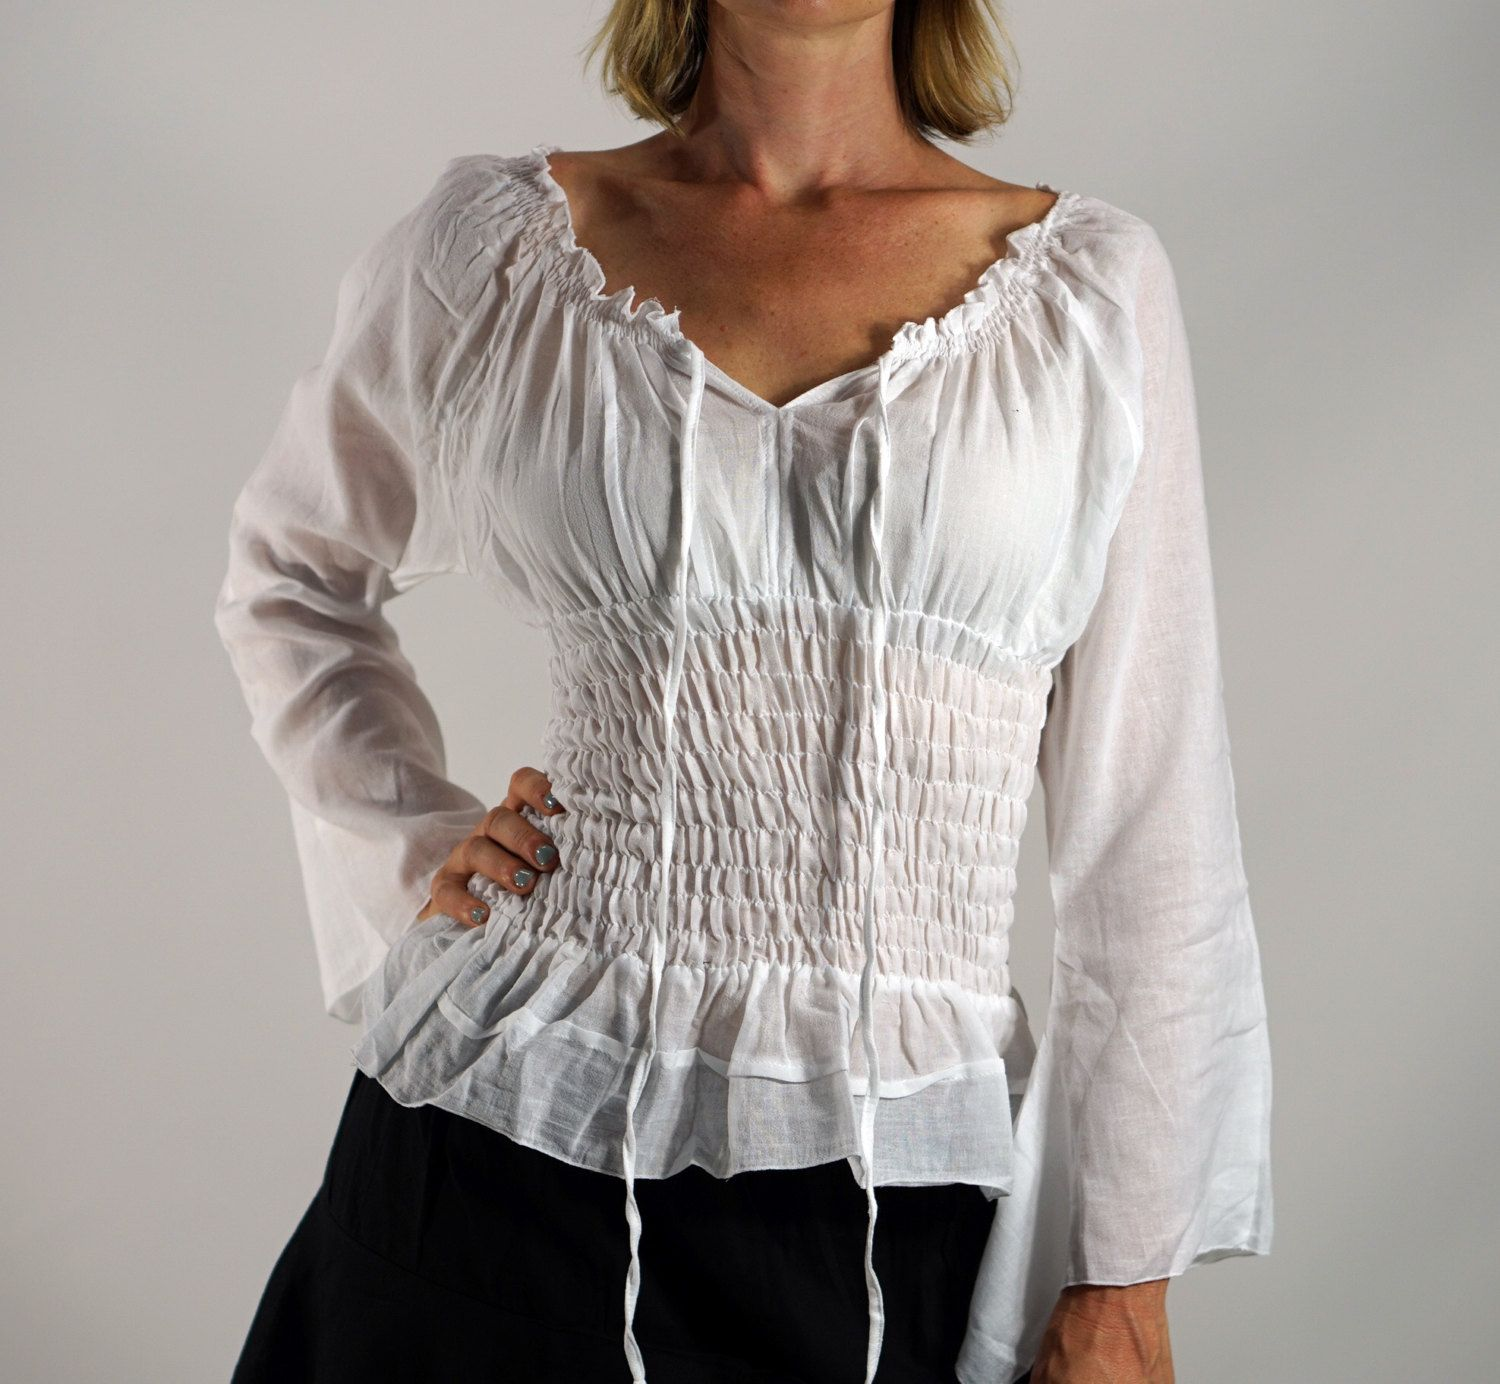 LS PEASANT Blouse - Zootzu Pirate Renaissance Festival Costume Chemise Gypsy Top Pirate Steampunk Shirt Corset Long Sleeves Top WHITE by zootzugarb on Etsy https://www.etsy.com/listing/248360447/ls-peasant-blouse-zootzu-pirate